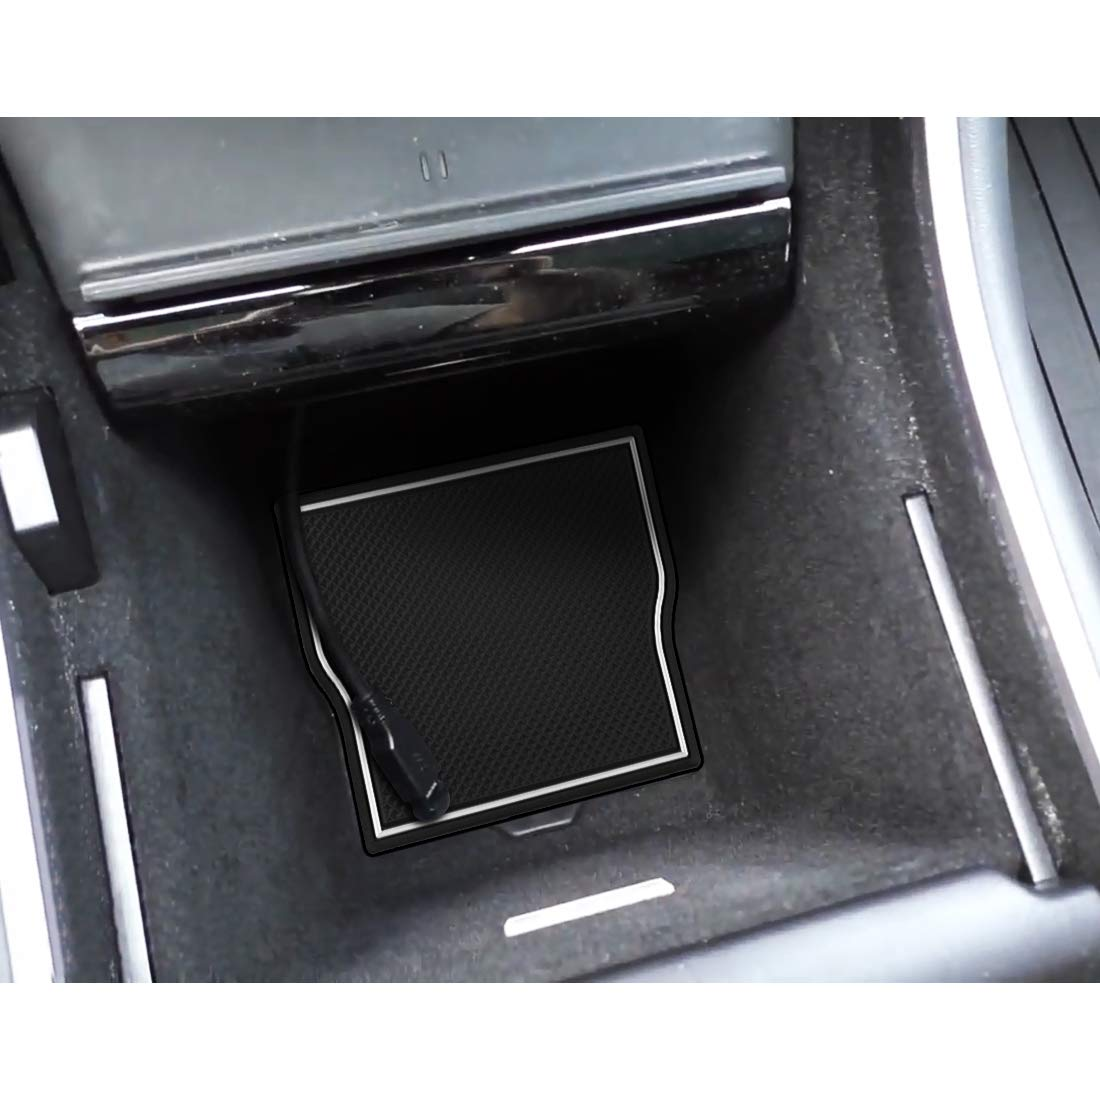 Solid Black BougeRV for Tesla Model 3 Accessories Custom Fit Cup and Center Console Liners